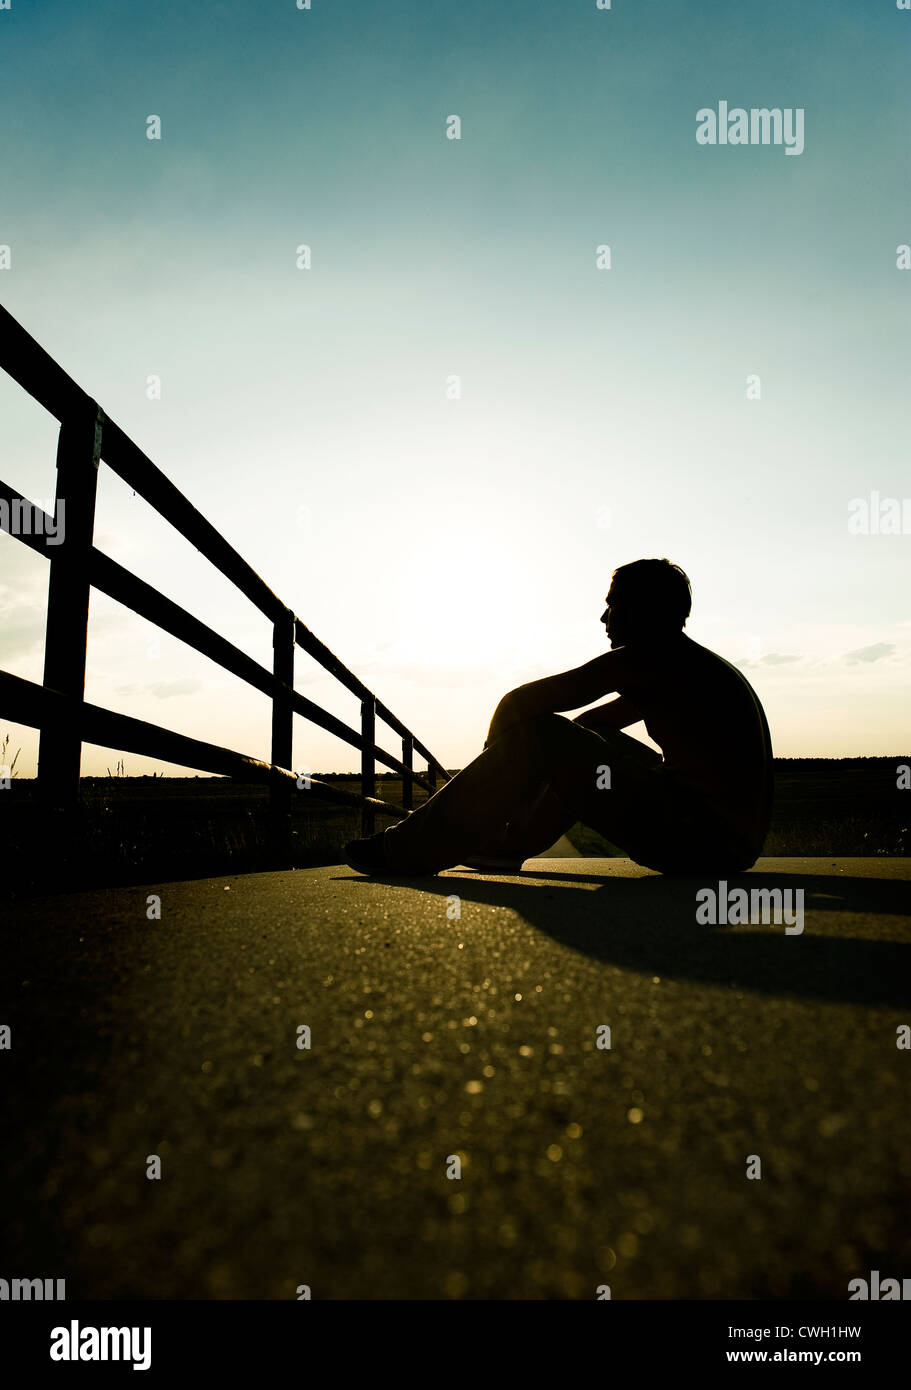 solitude,loneliness,silhouette - Stock Image